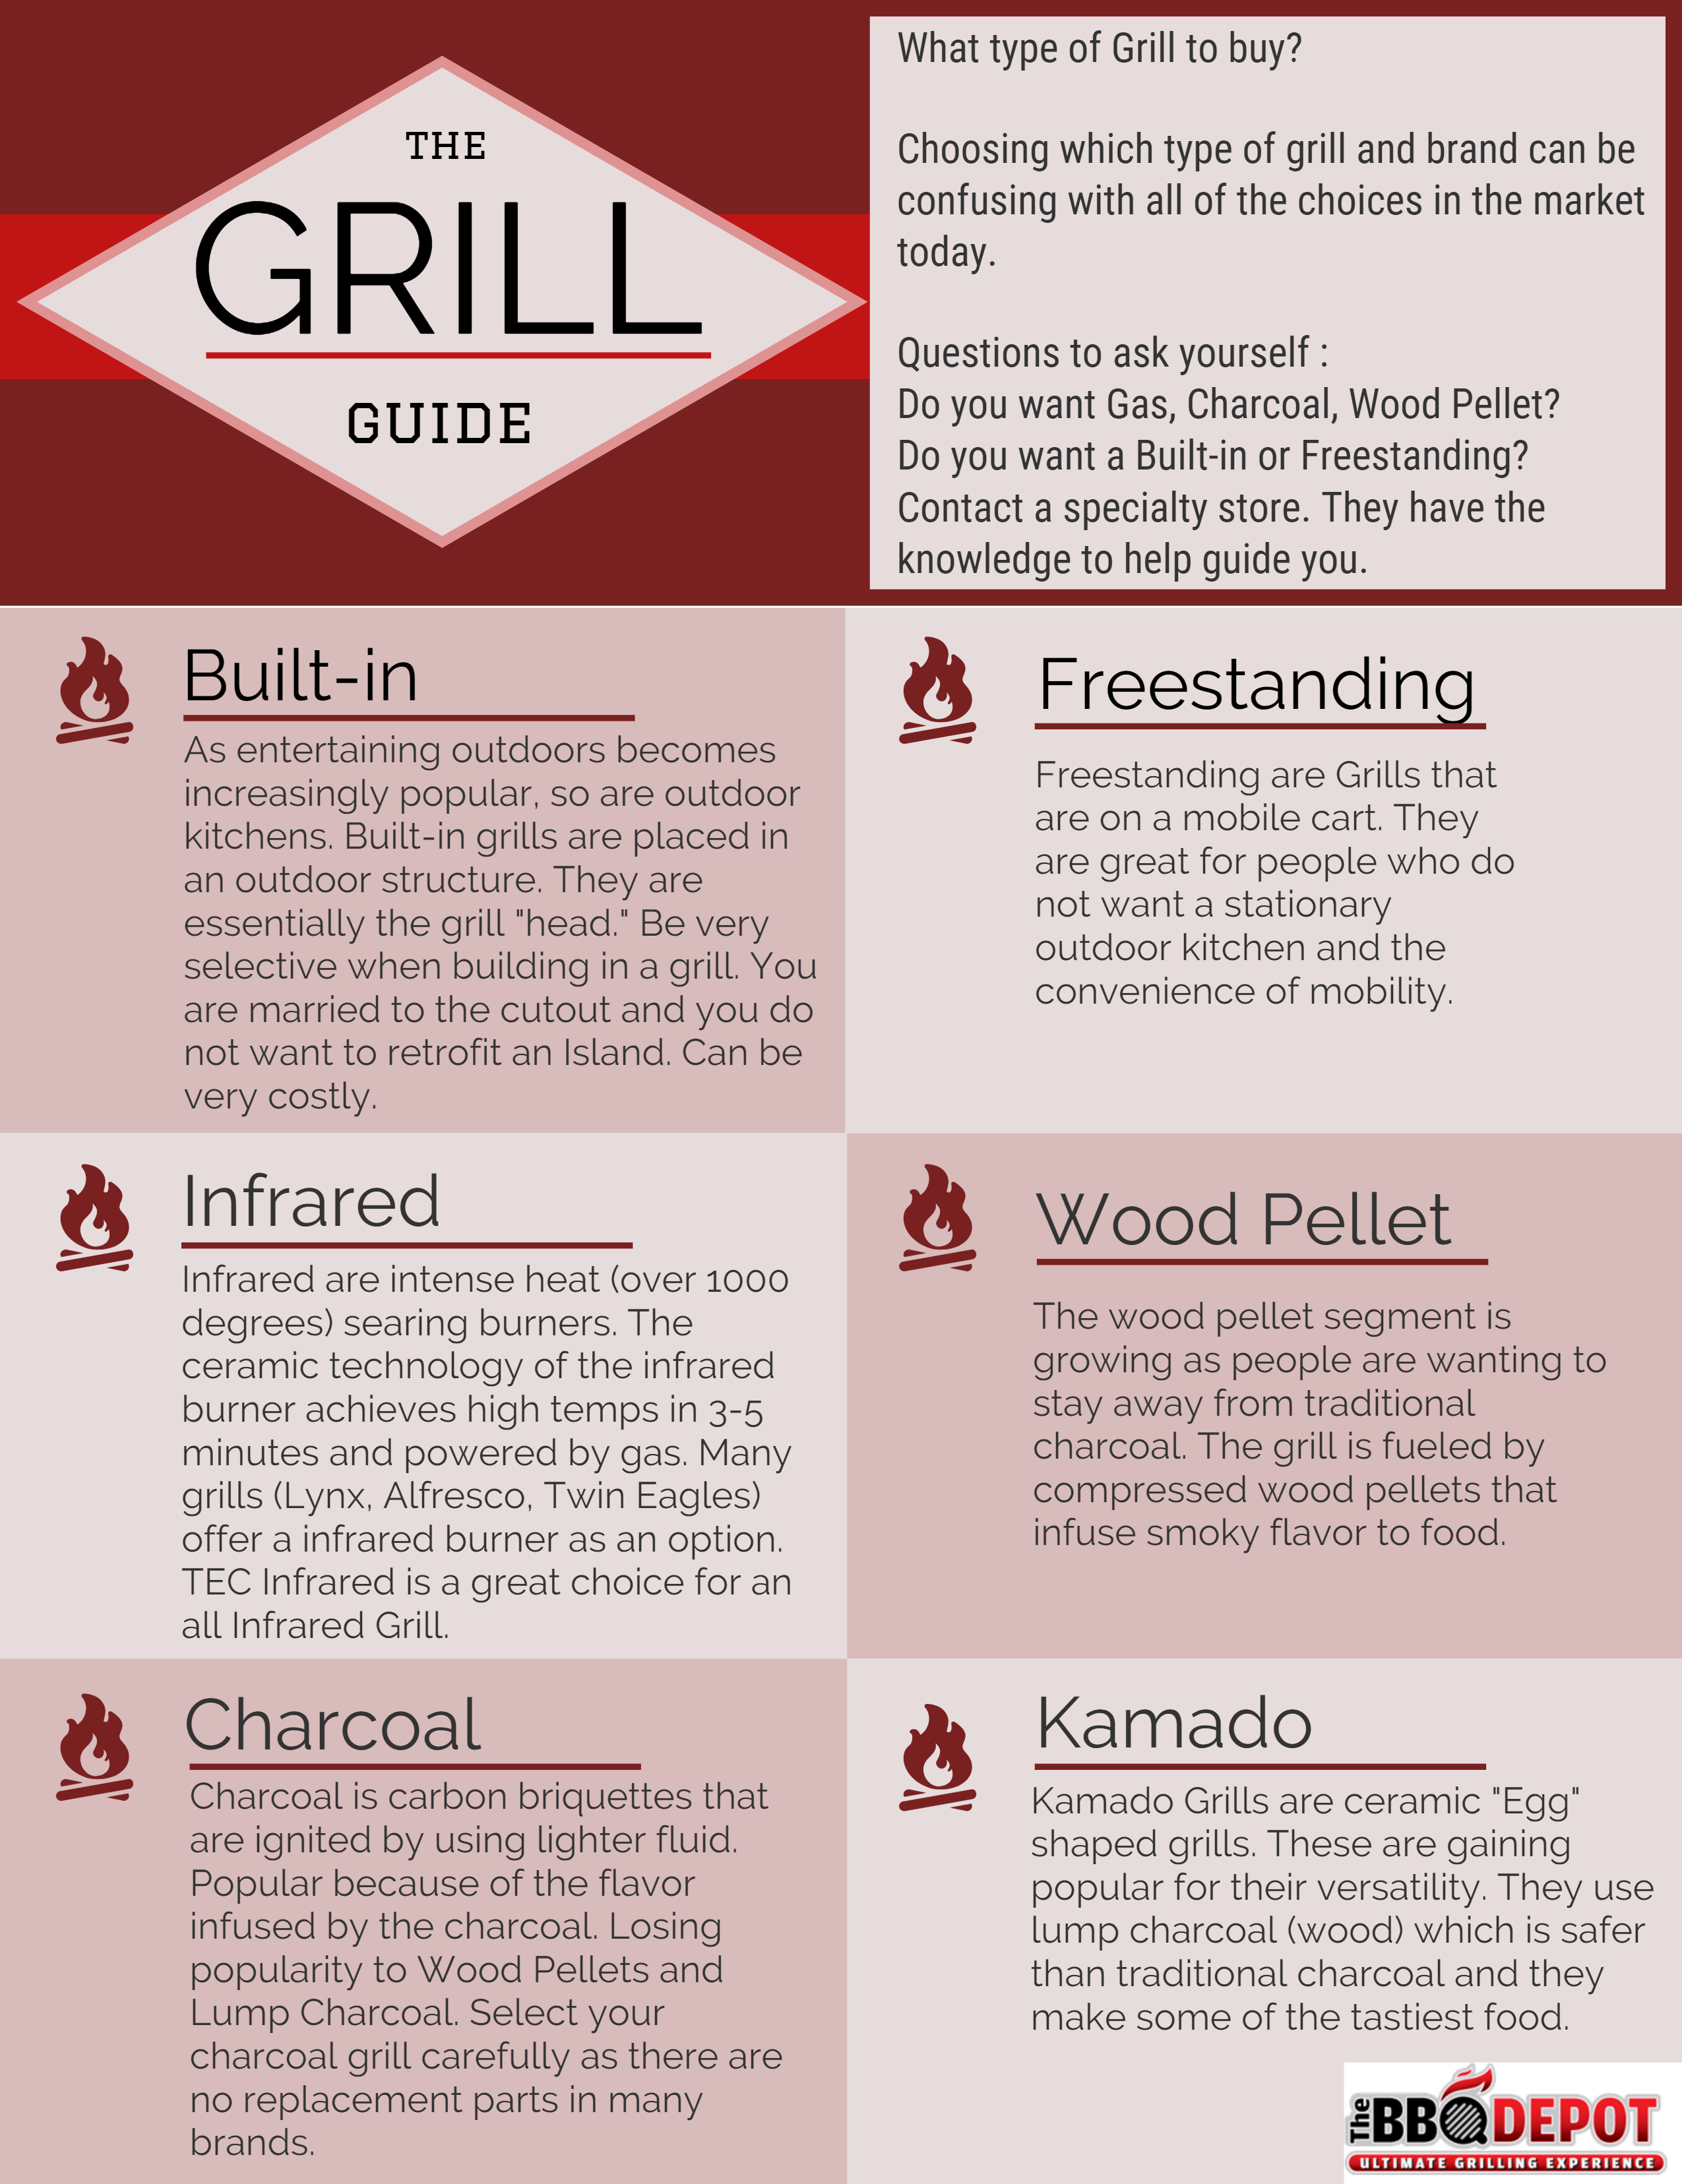 The Grill Guide